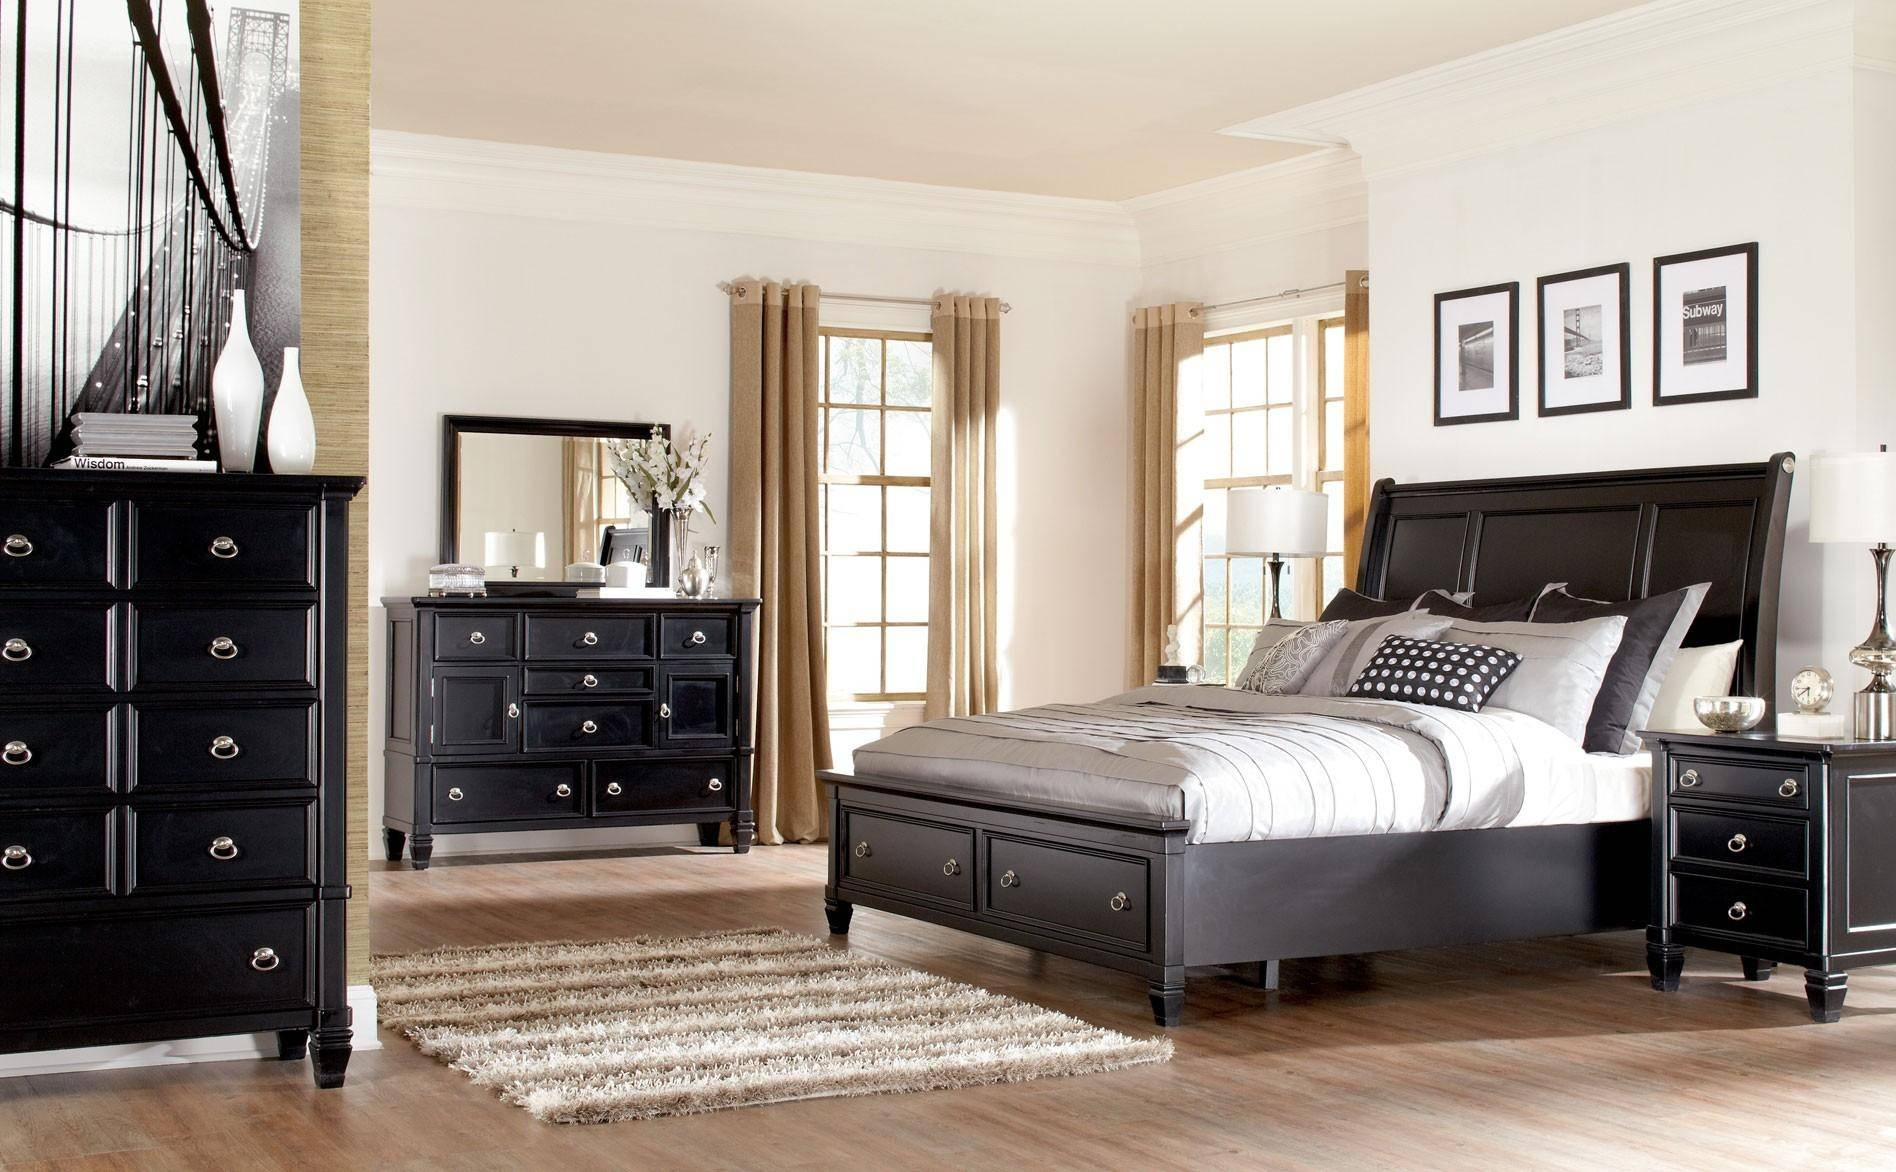 Ashley Greensburg B671 Queen Size Sleigh Bedroom Set 6pcs in Black ...